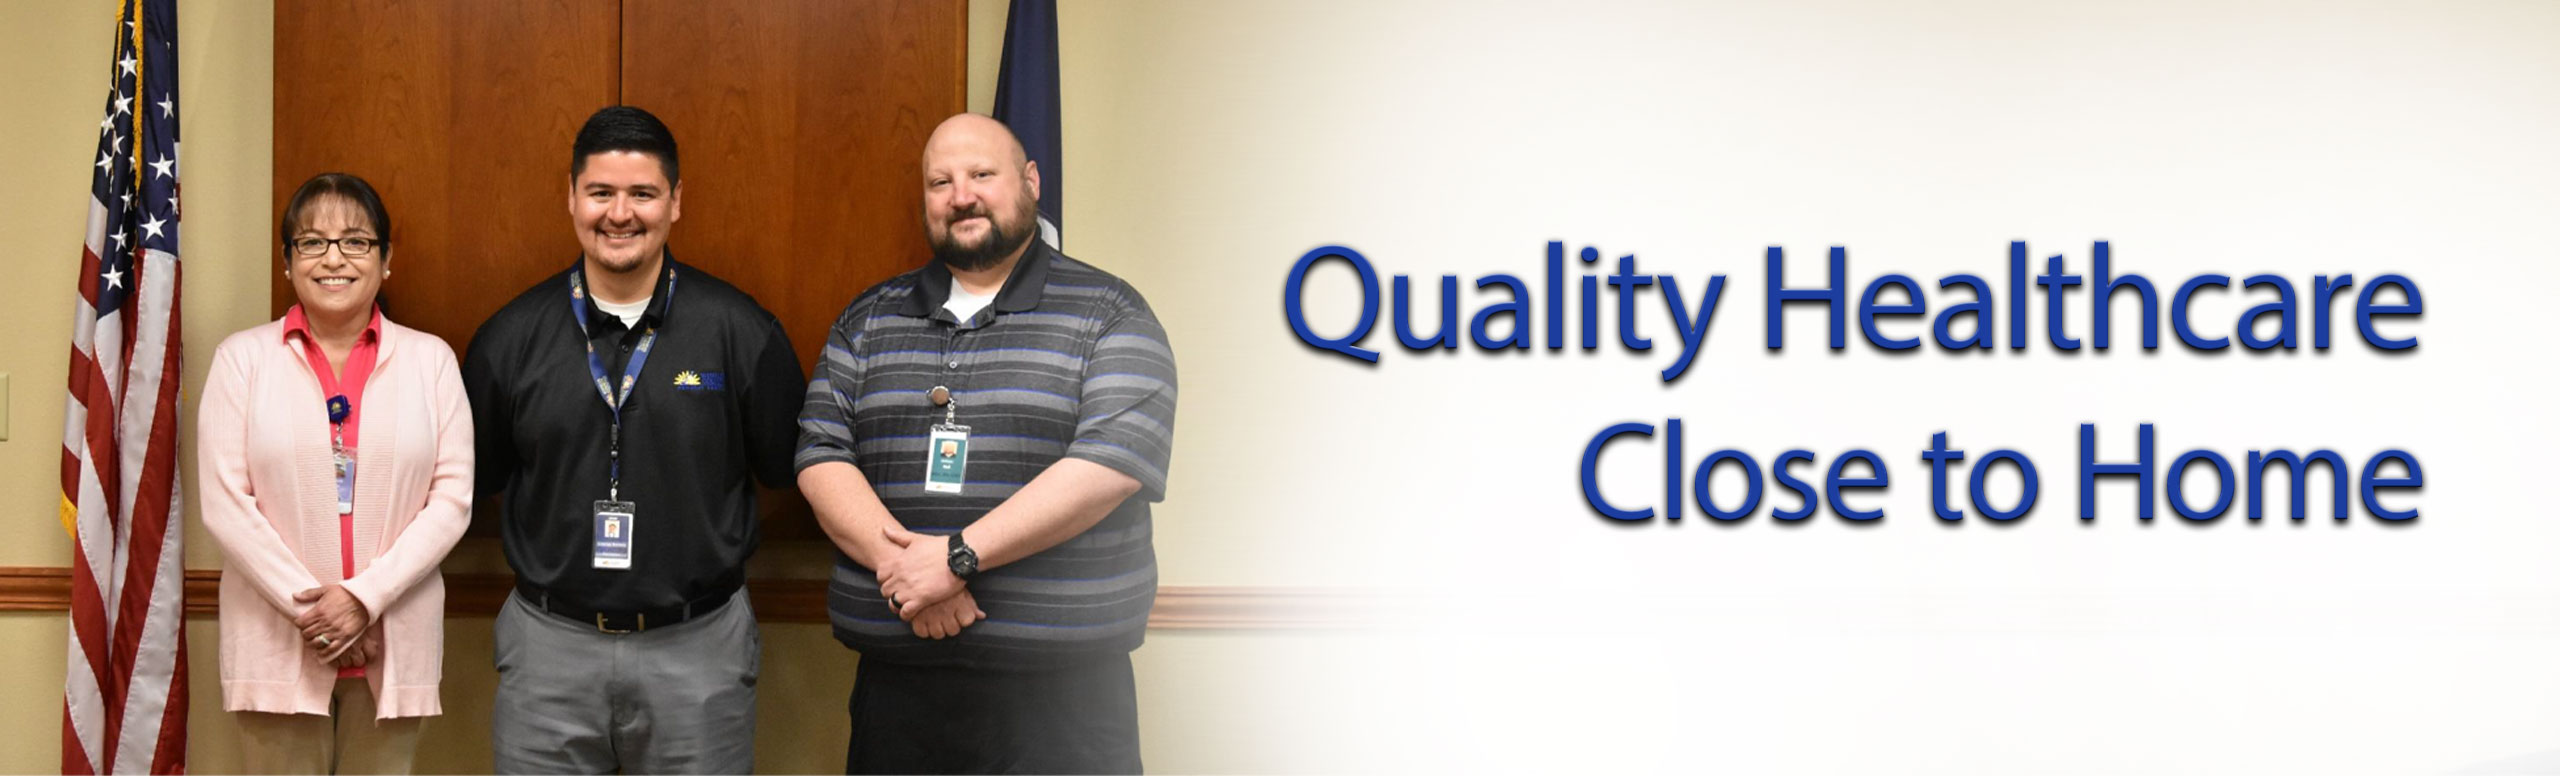 Quality Healthcare Close to home